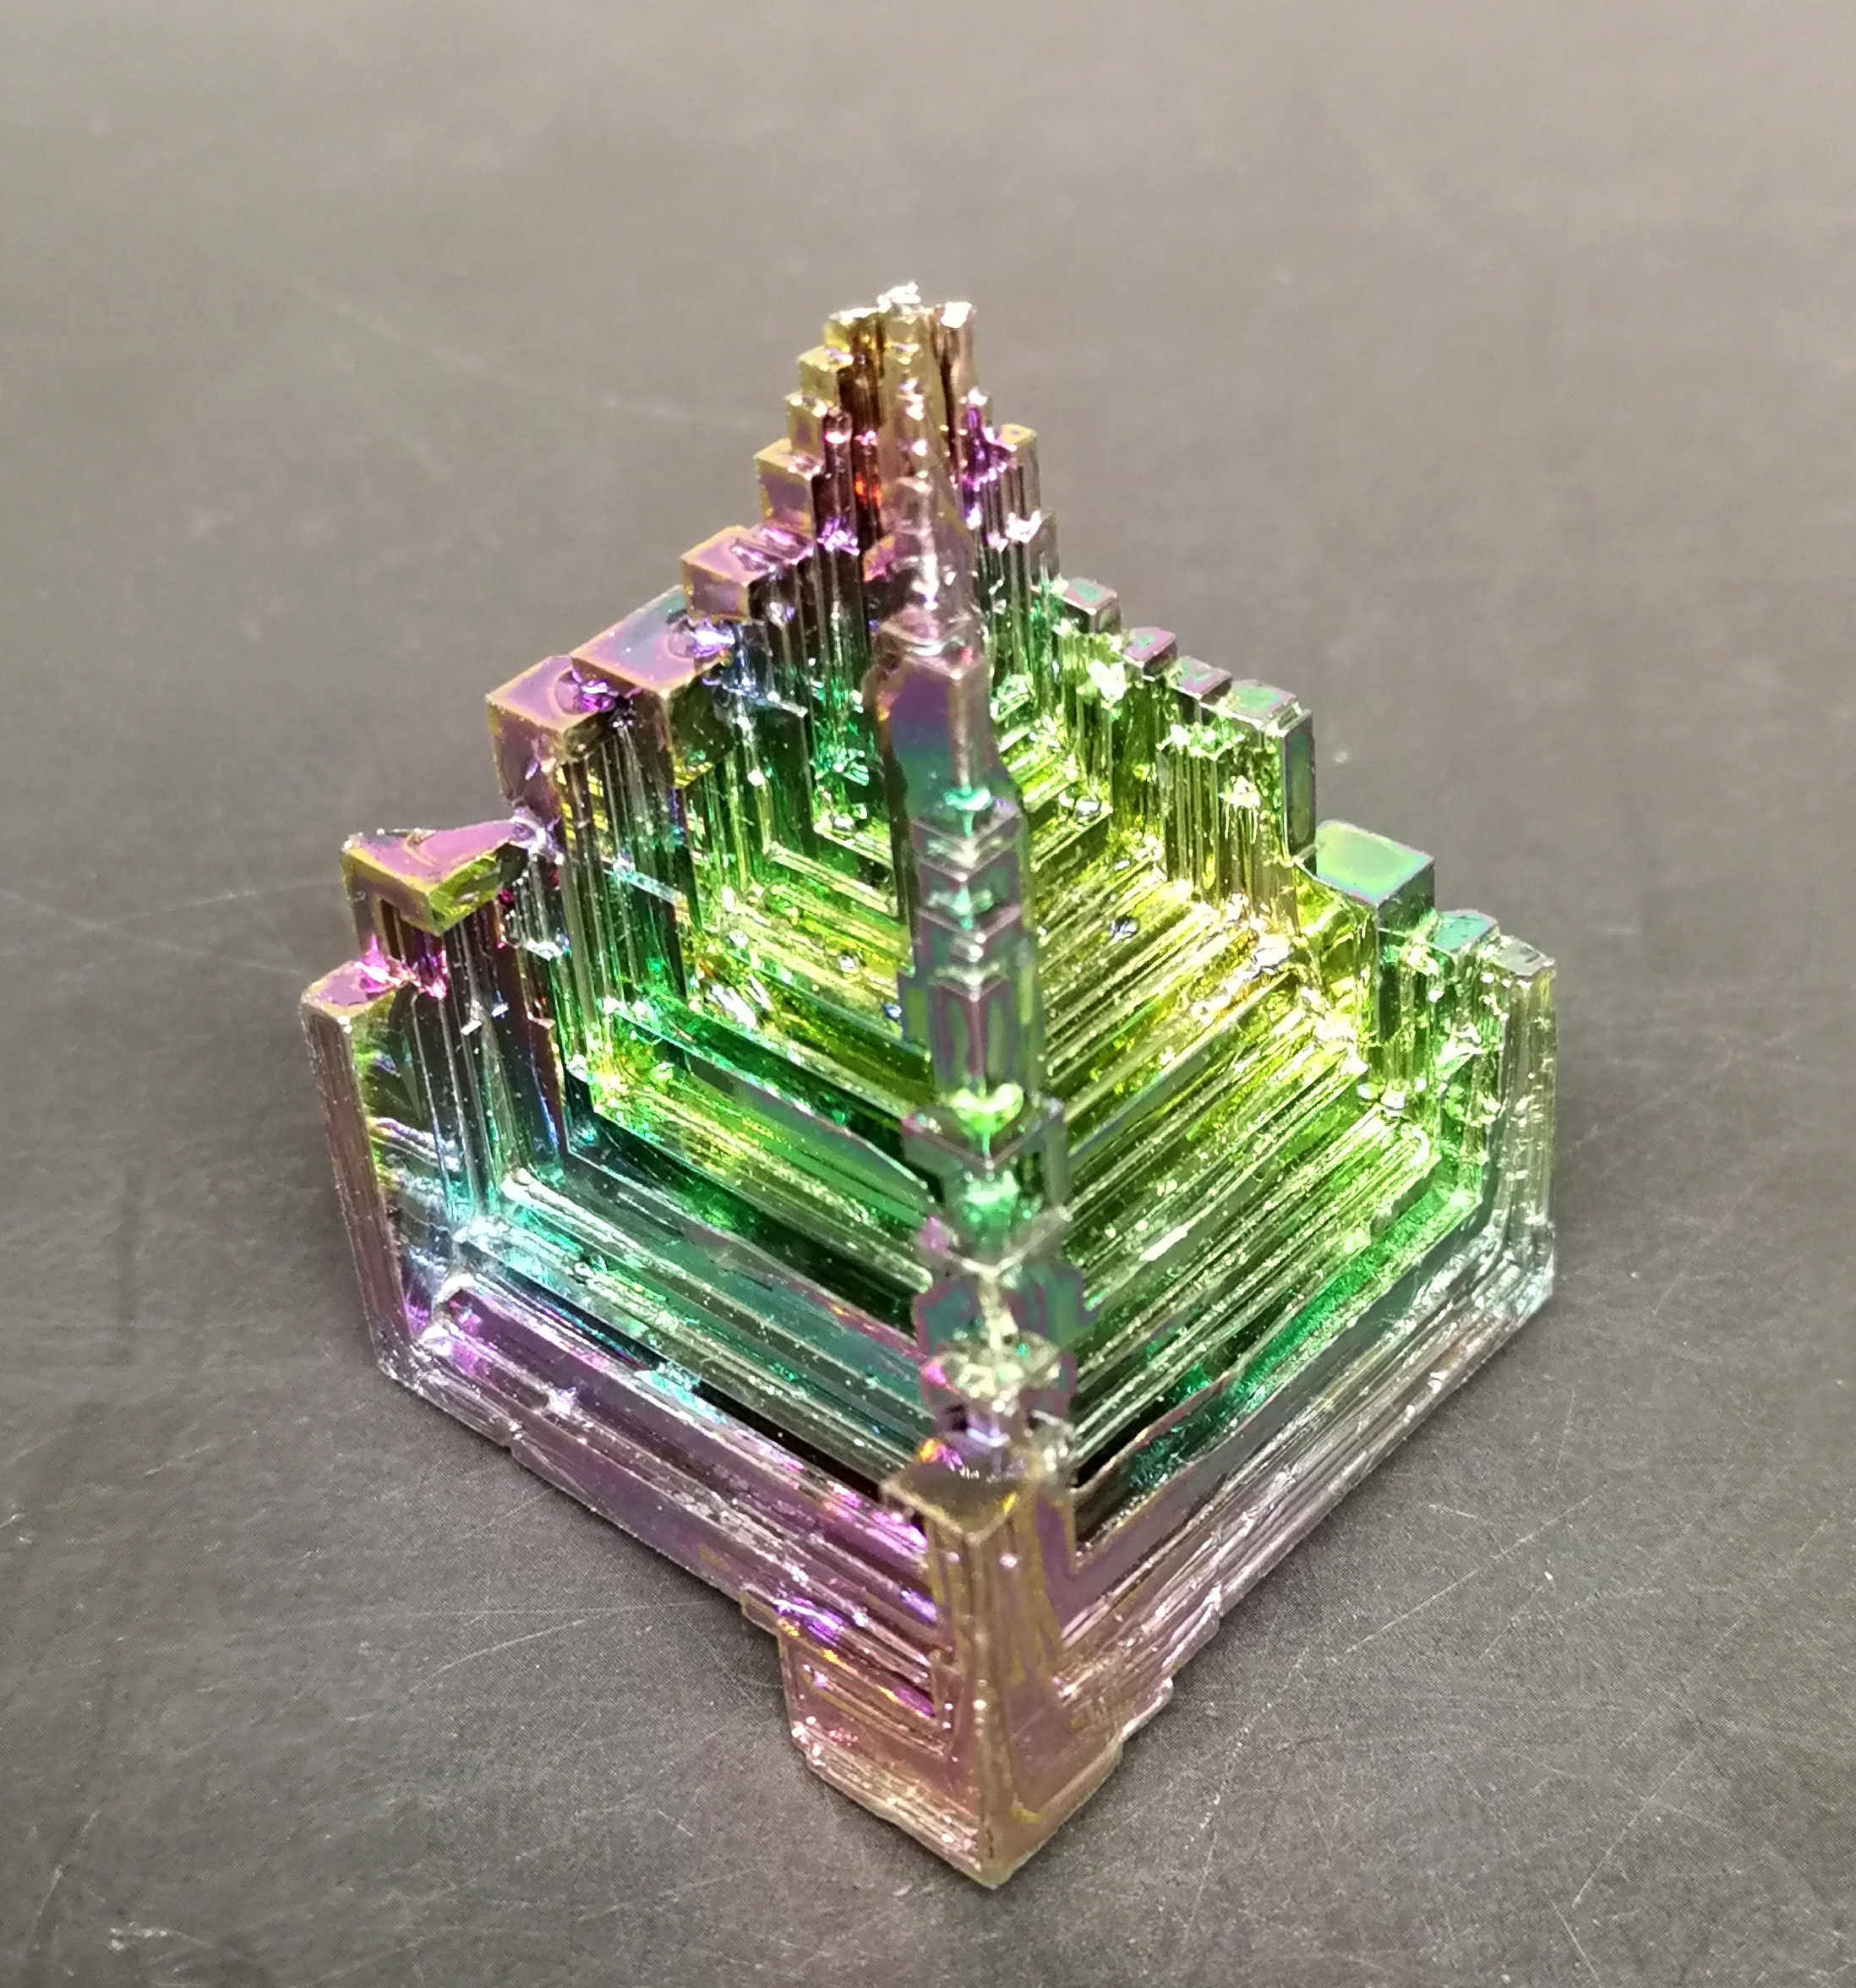 70g Beautiful Bismuth Crystals Bismuth Metal crystal Stones and crystals from china Free shipping